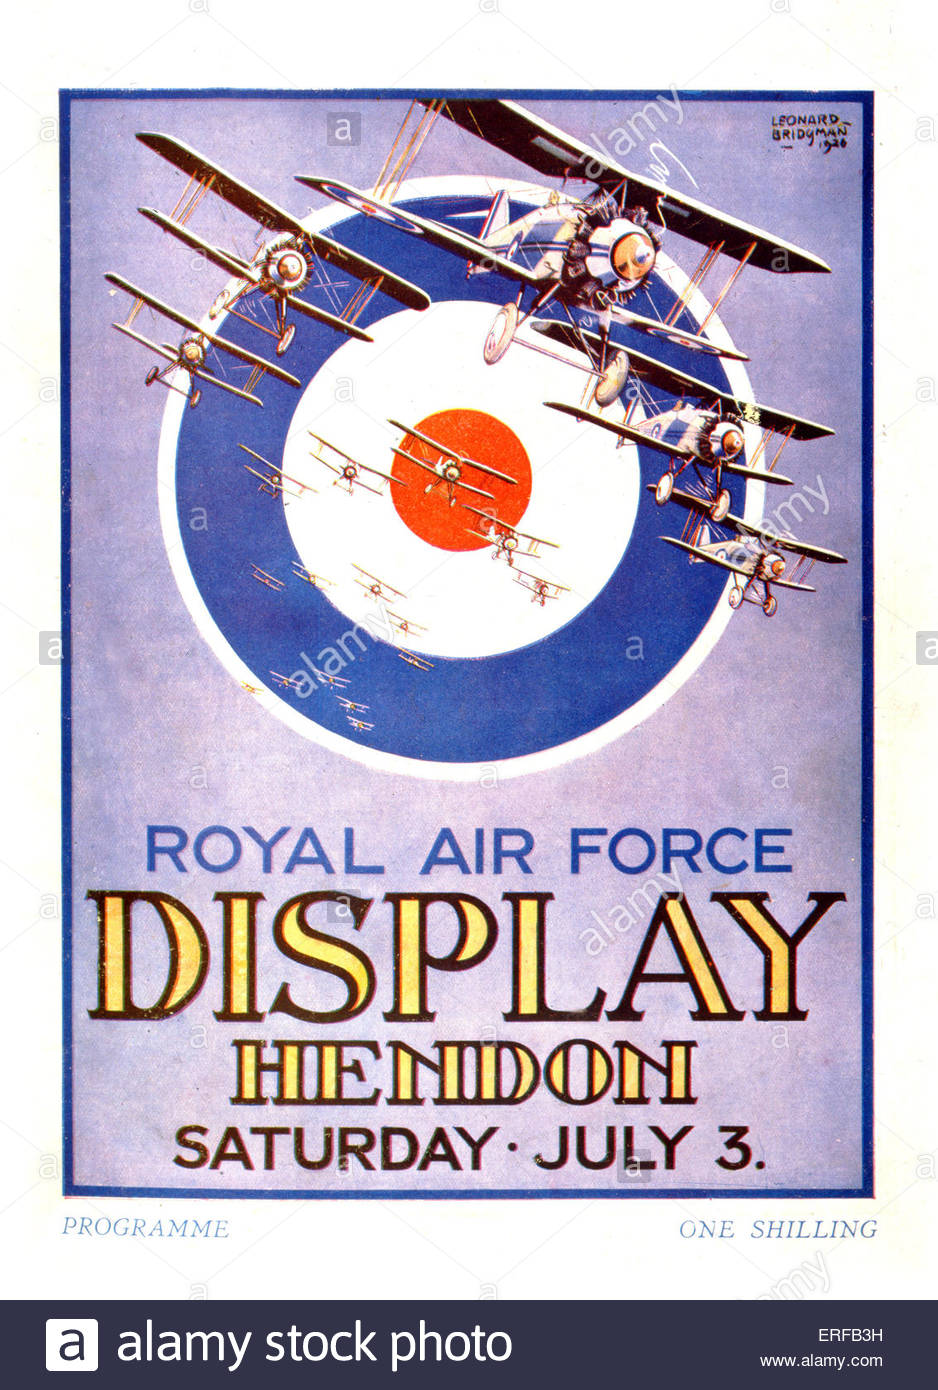 Royal Air Force (RAF) display programme front cover. Display Hendon Saturday July 3, 1926. - Stock Image